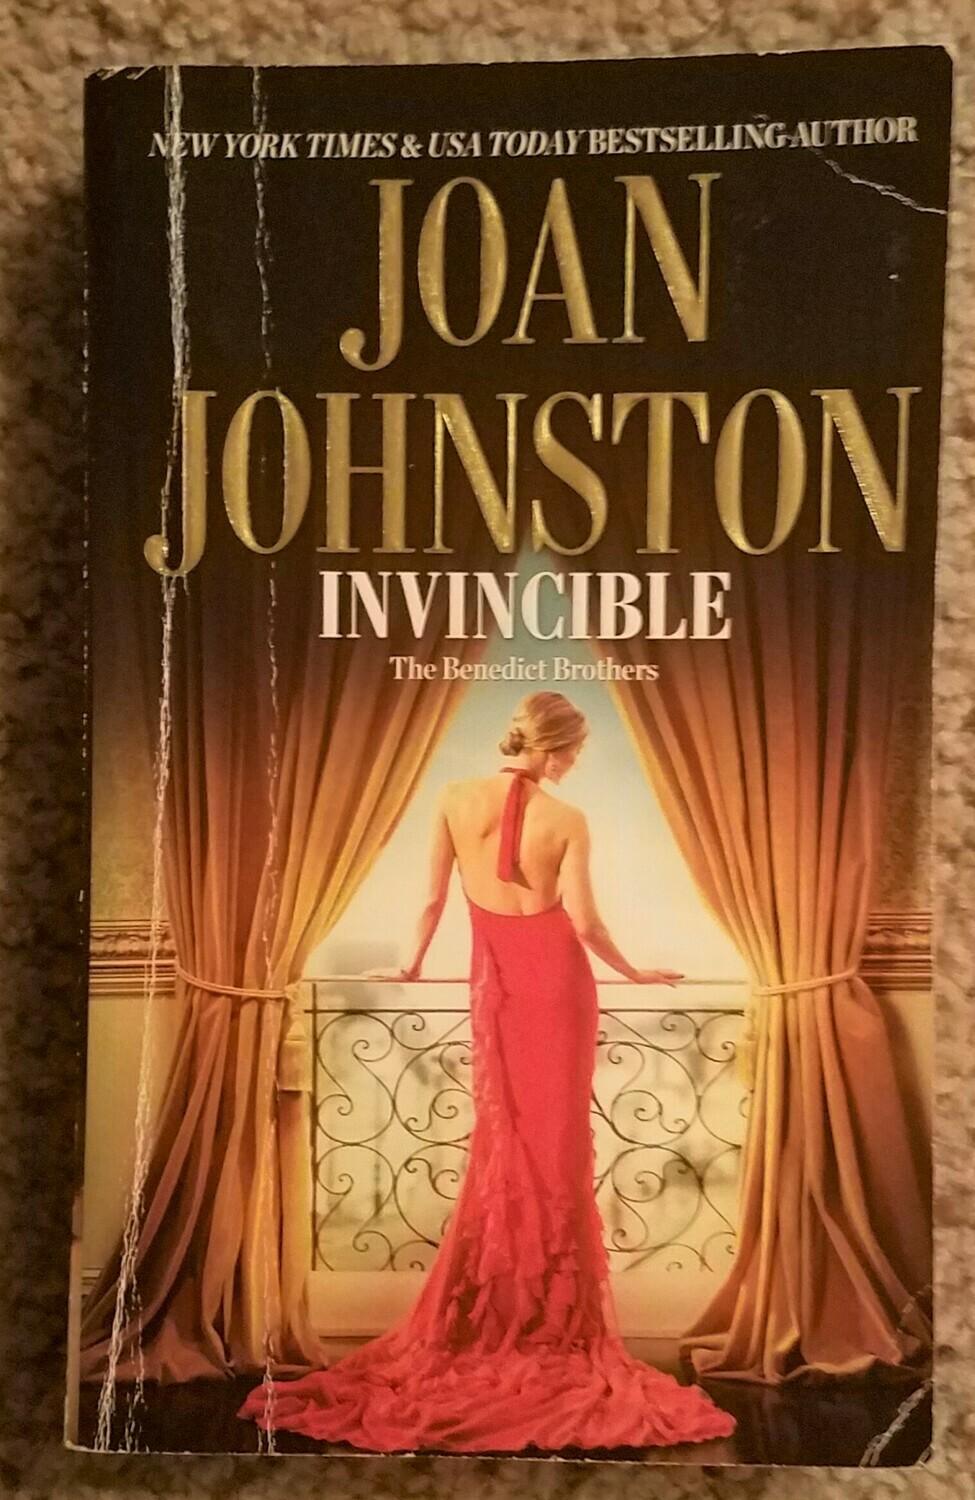 Invincible by Joan Johnston